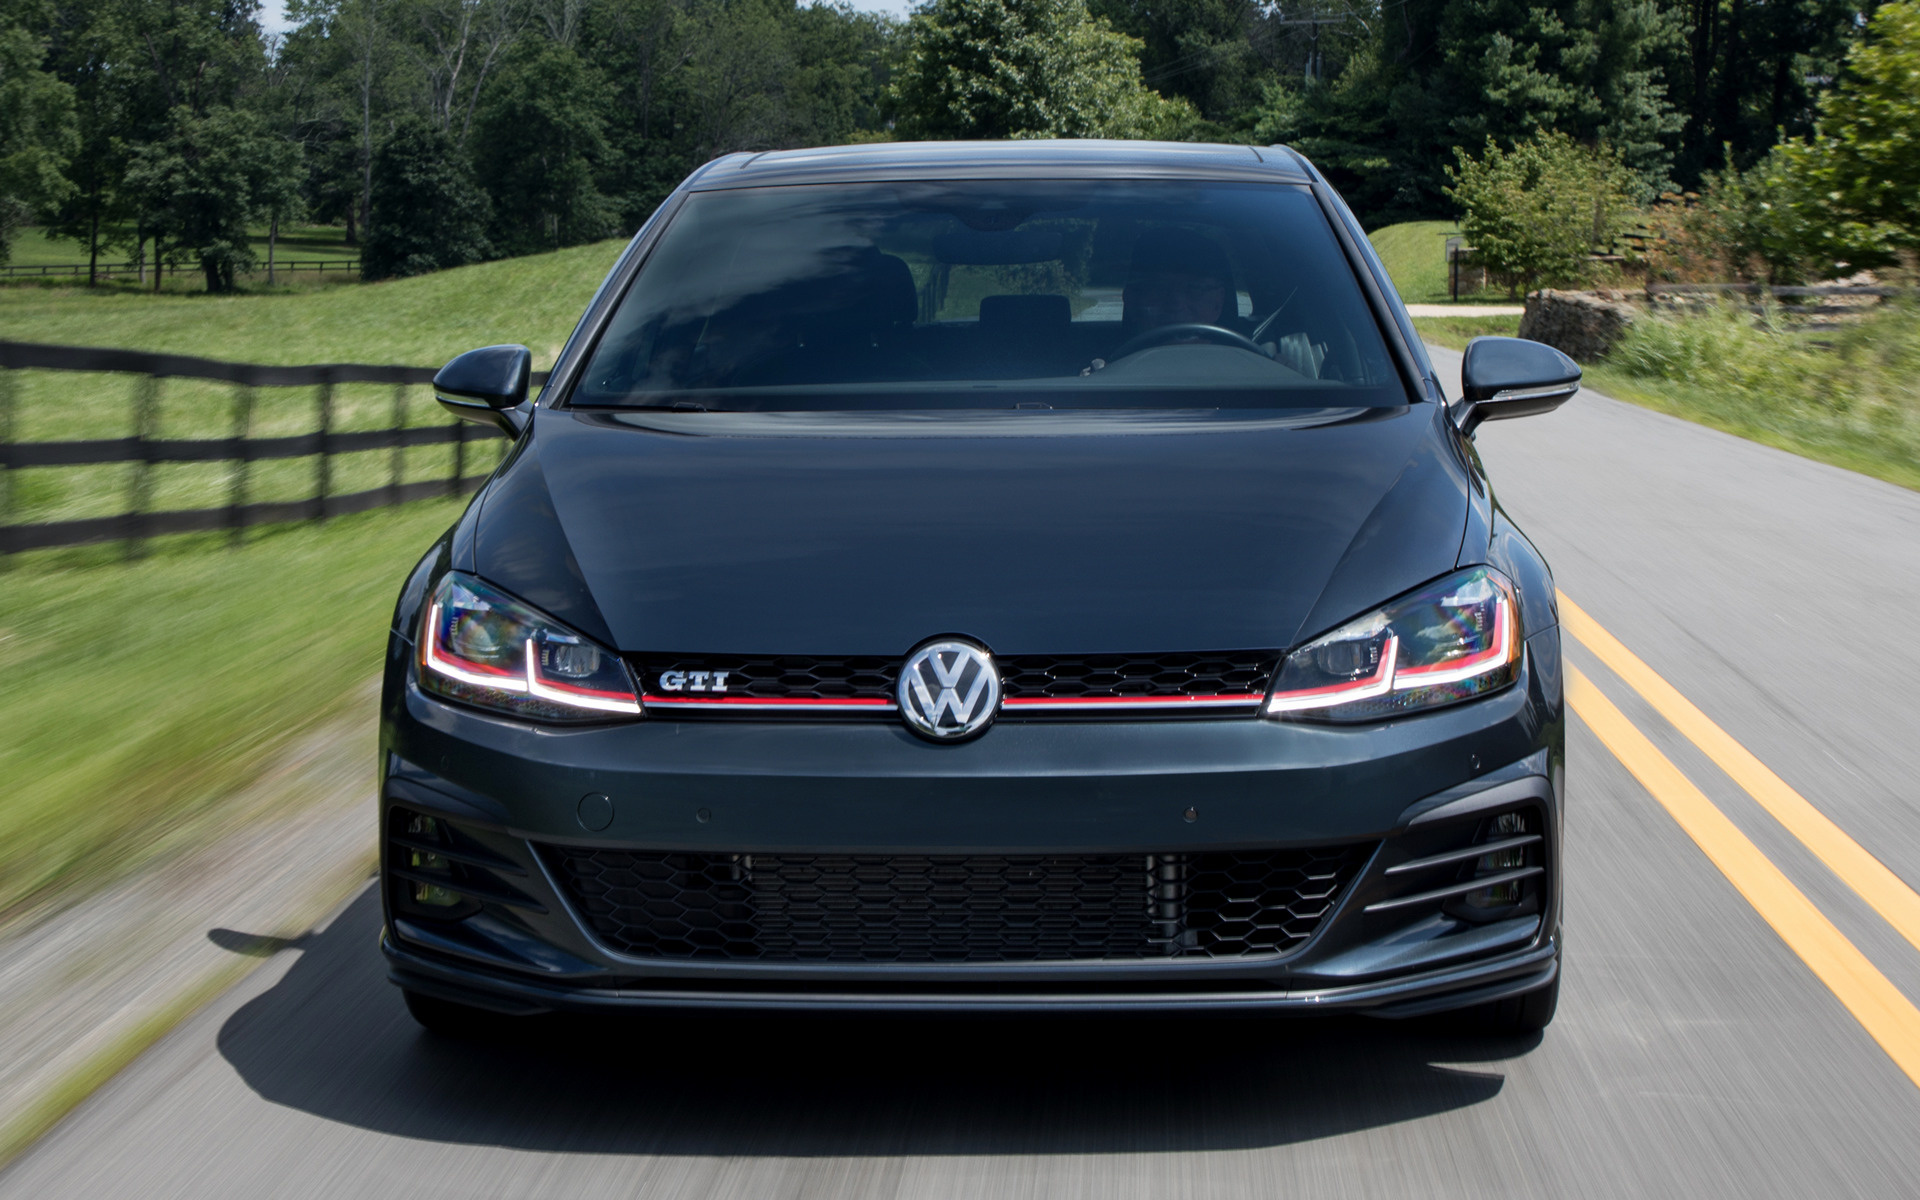 2018 Volkswagen Golf GTI 5-door (US) - Wallpapers and HD Images | Car Pixel